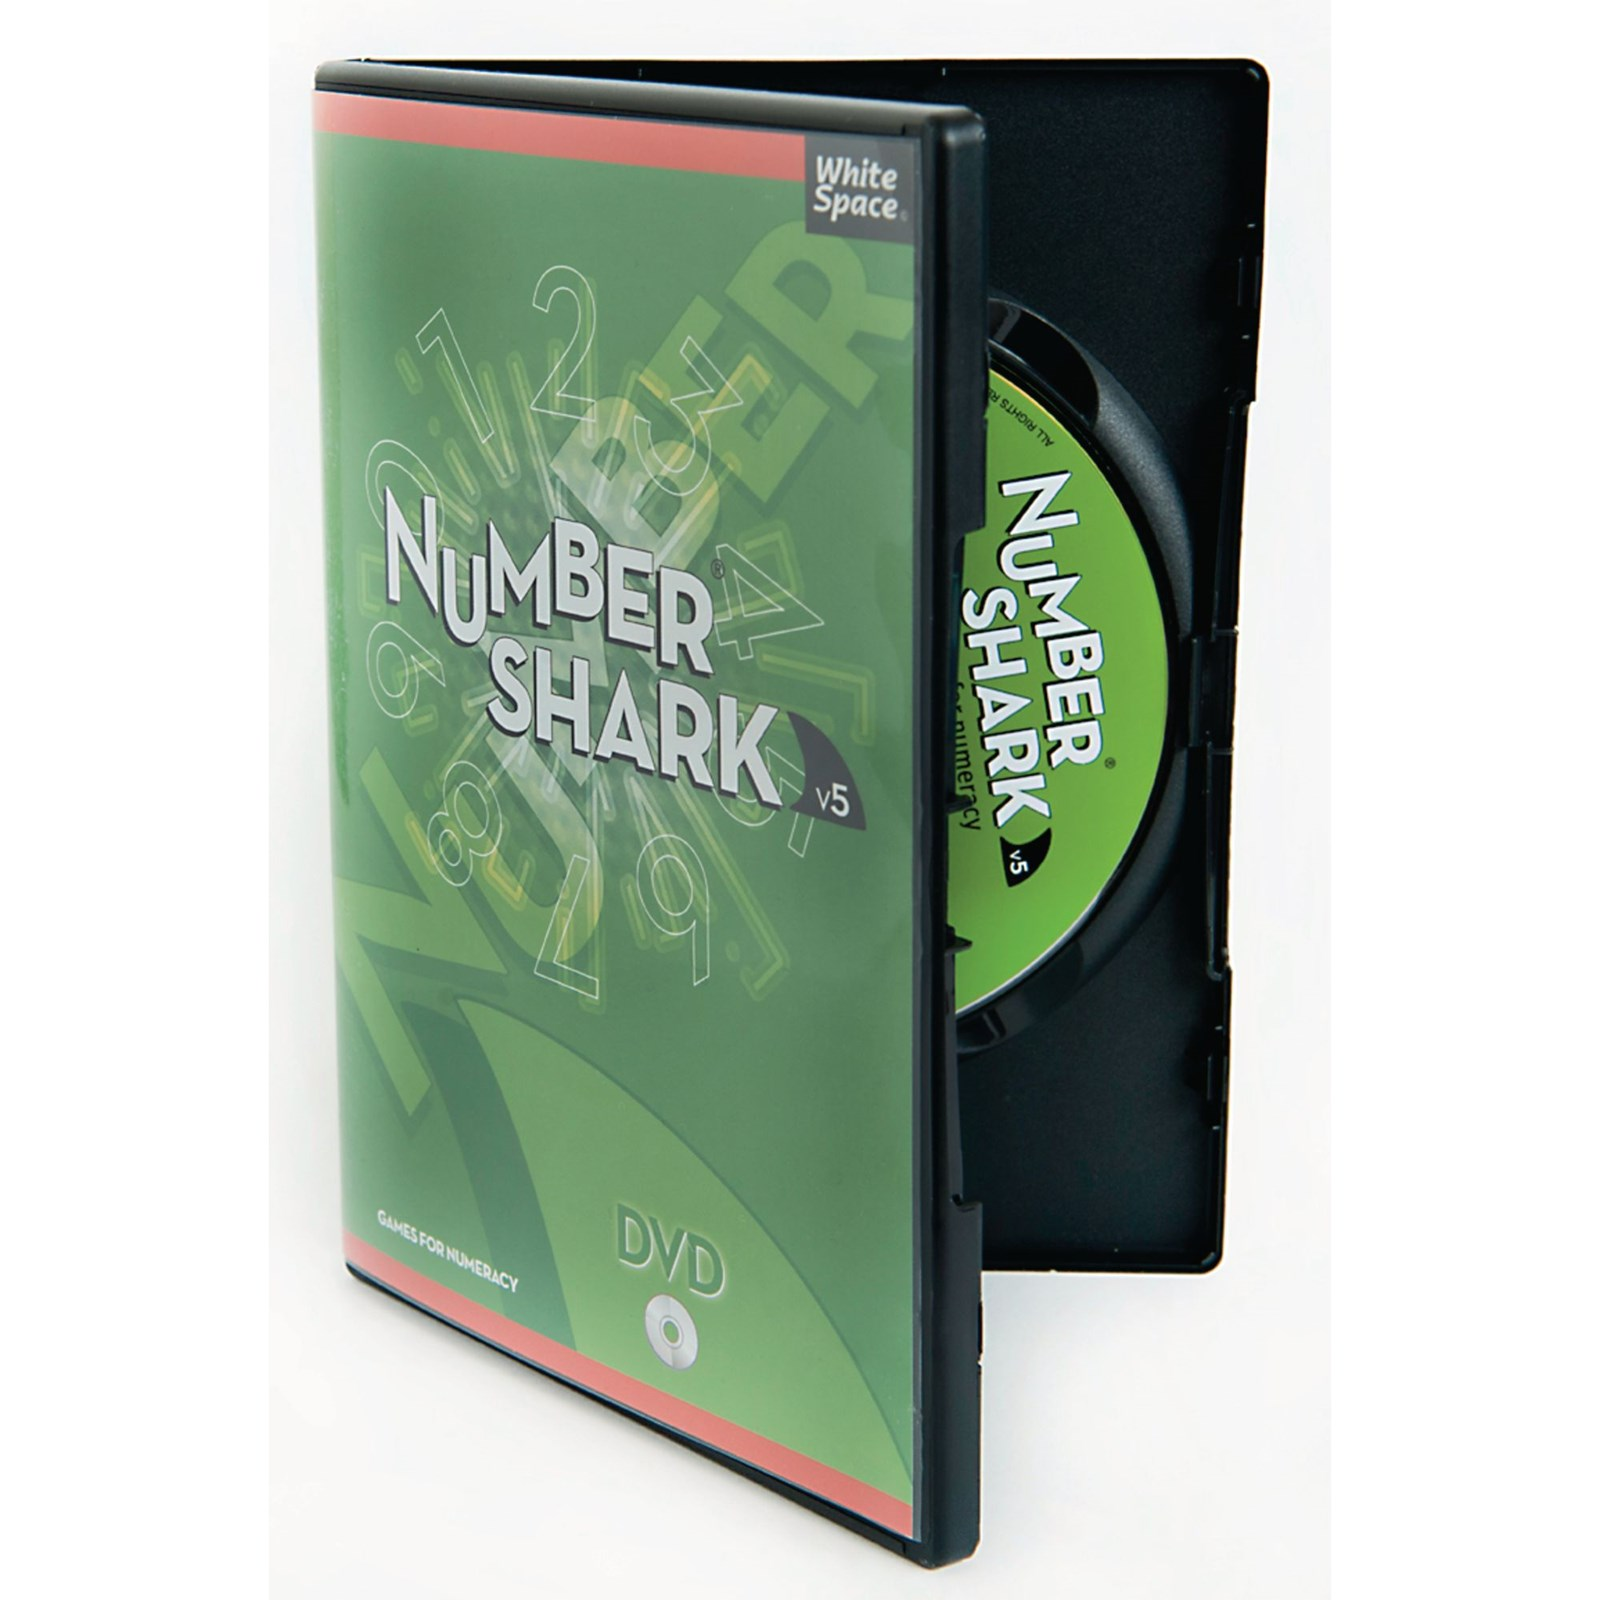 Number Shark 5 - 20 Users